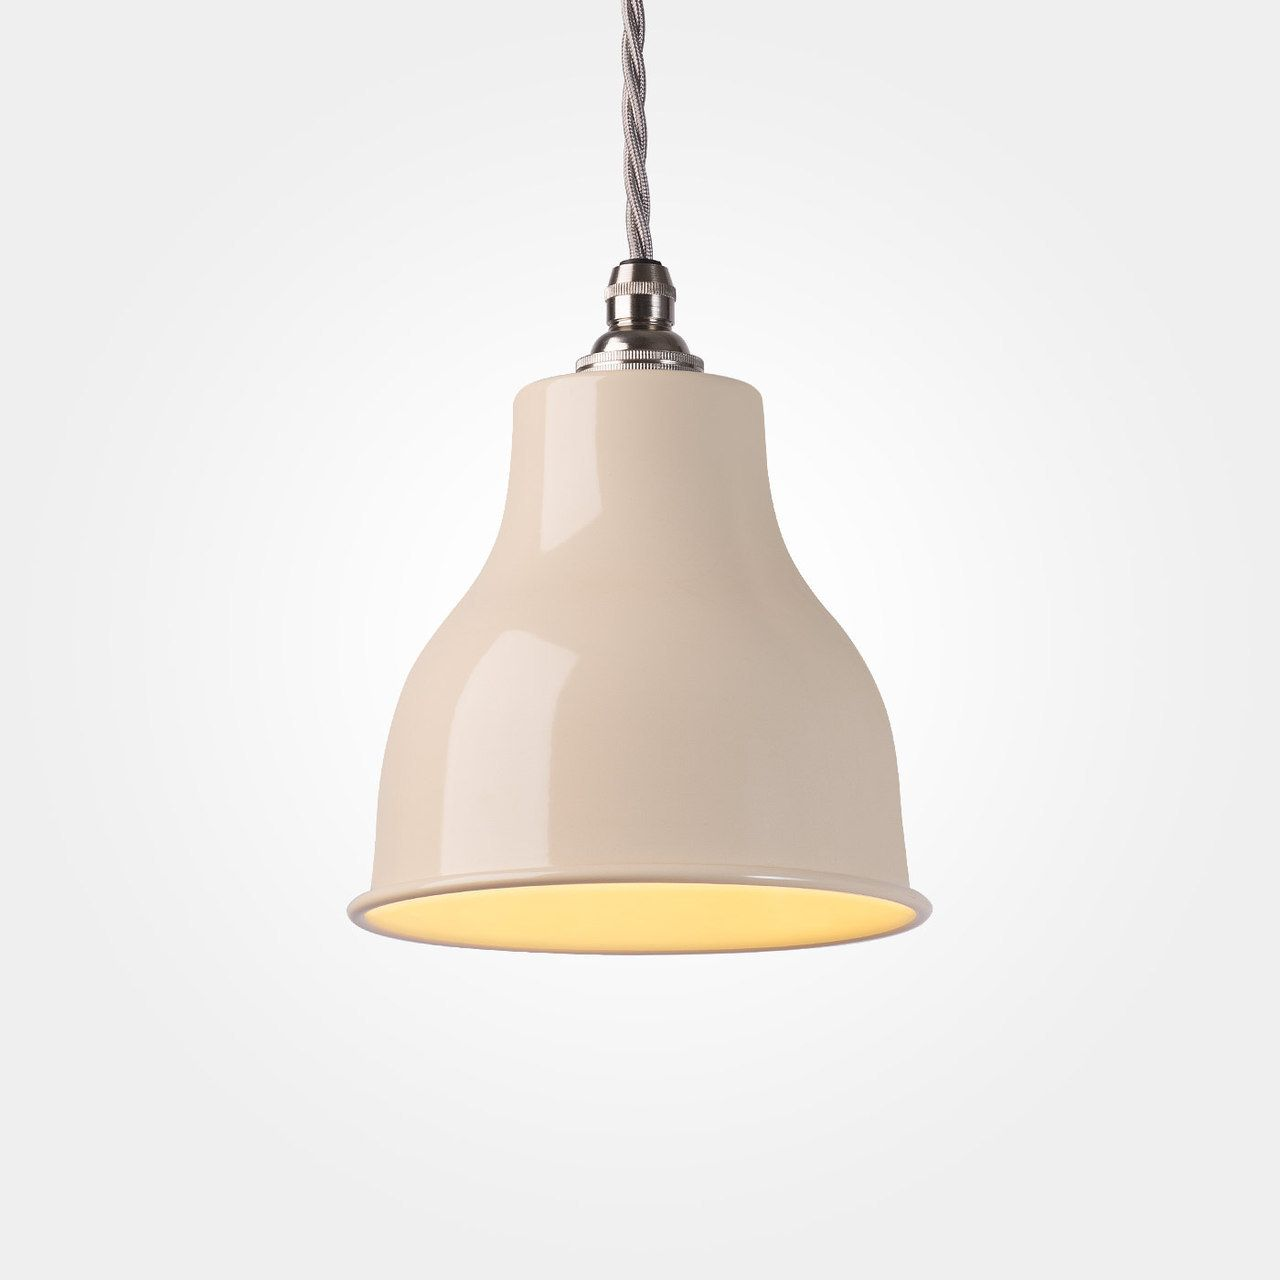 Factory pendant small ivory vintage industrial lighting